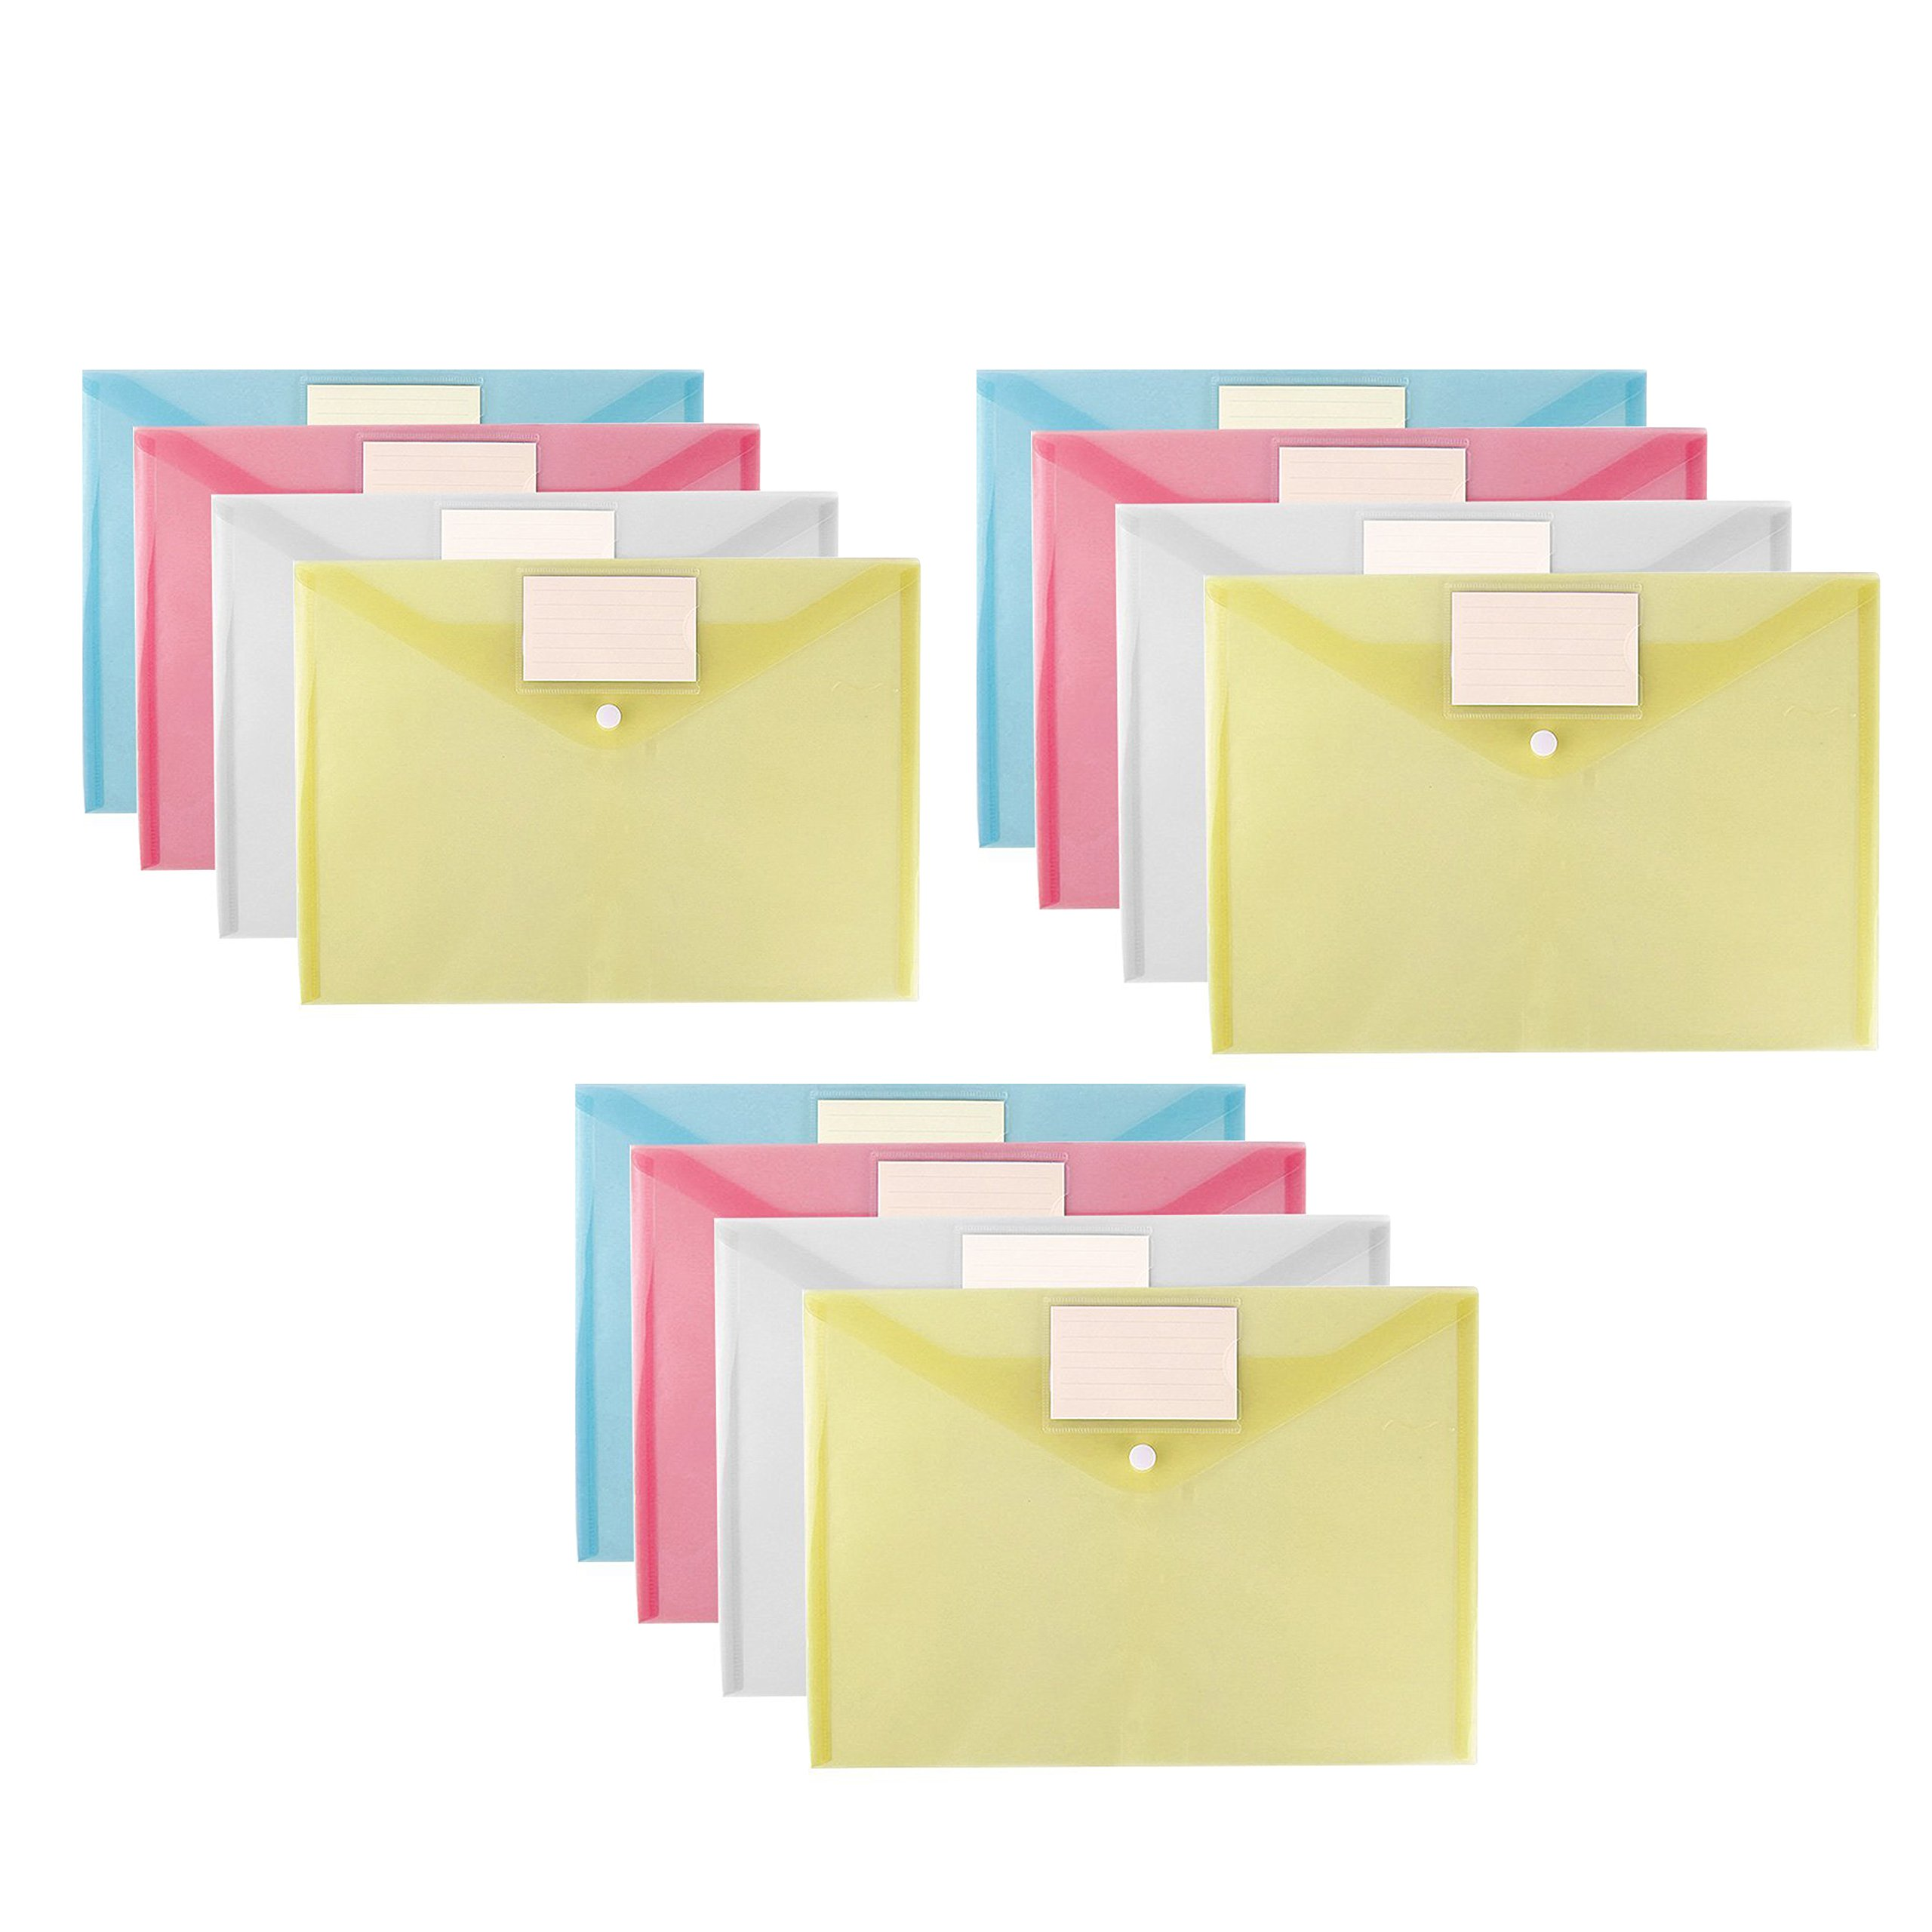 EzSos File Bag,A4 Document Envelope Folder, Clear Transparent Thick PP Storage Bags ,Snap Button Organizer With Label Pocket for Papers,Document, Business Cards, Office Stationery 12 Pcs/Pack